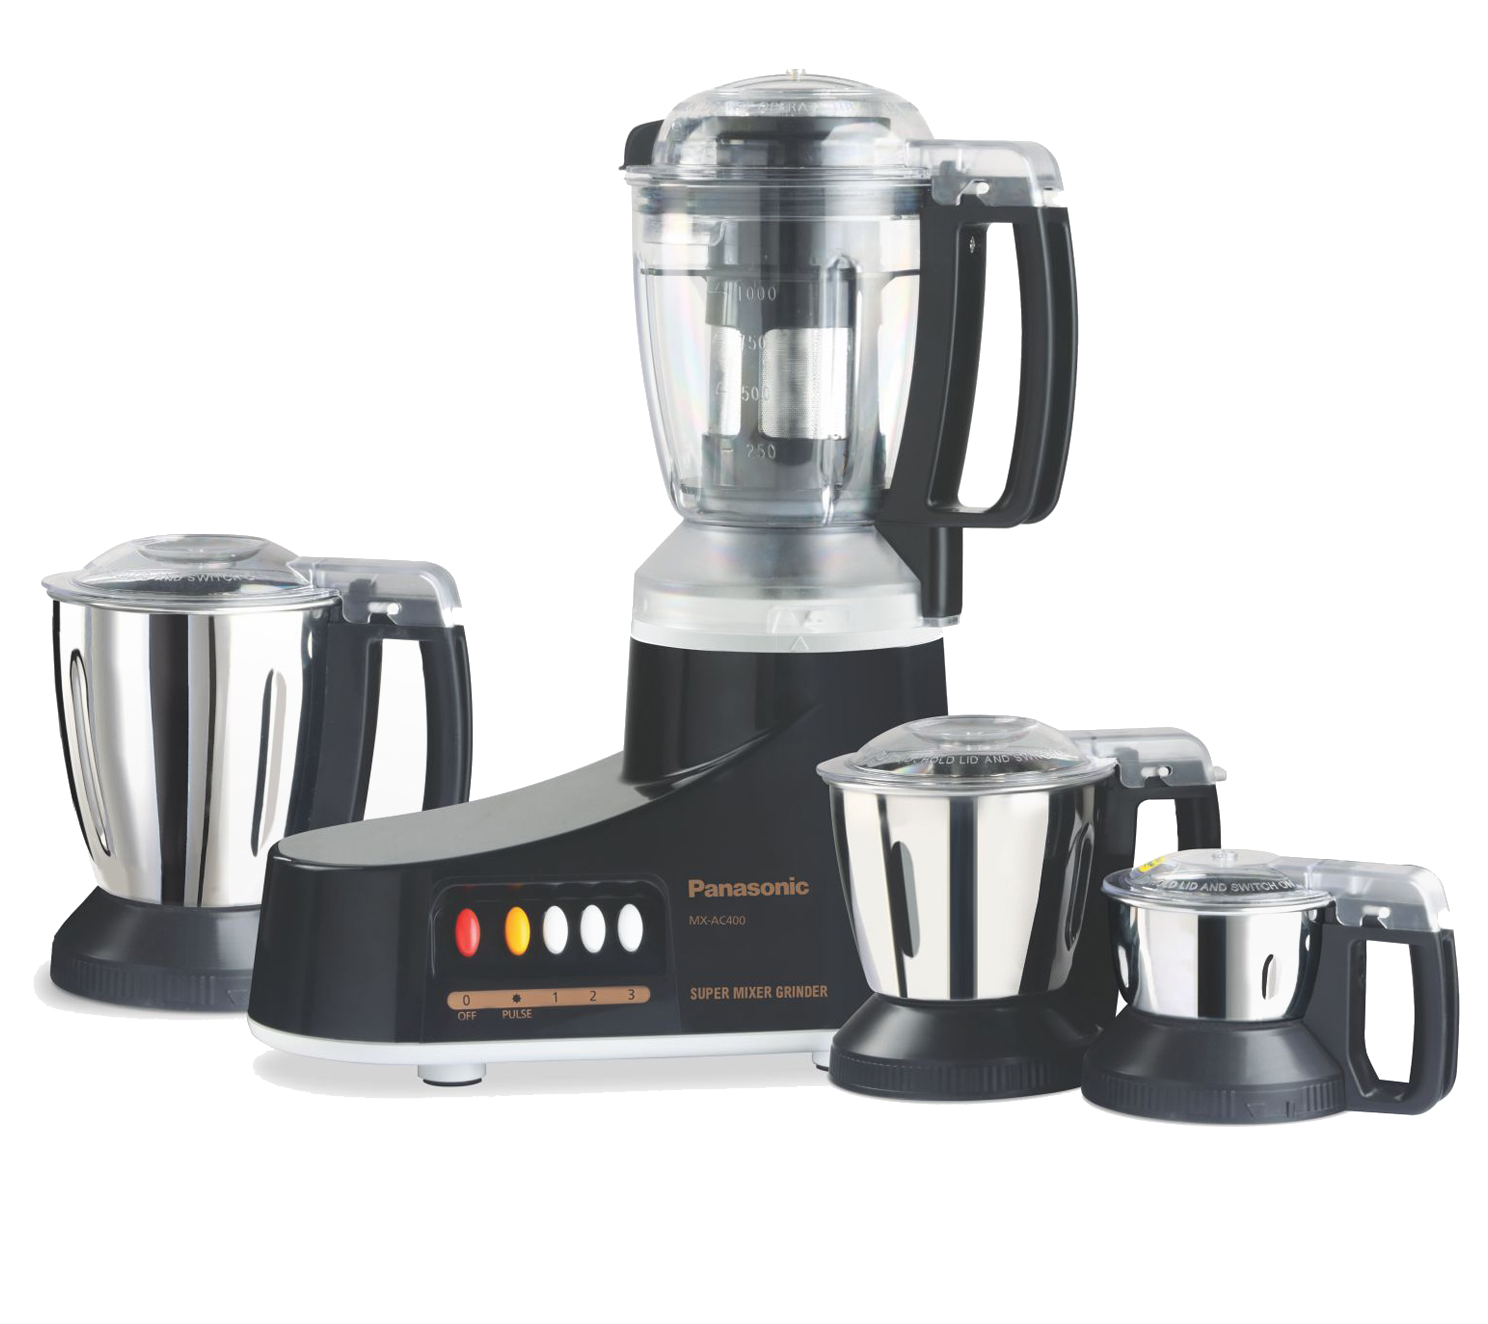 Panasonic Blender/Grinder/Mixer 1000W 4 Jars Black